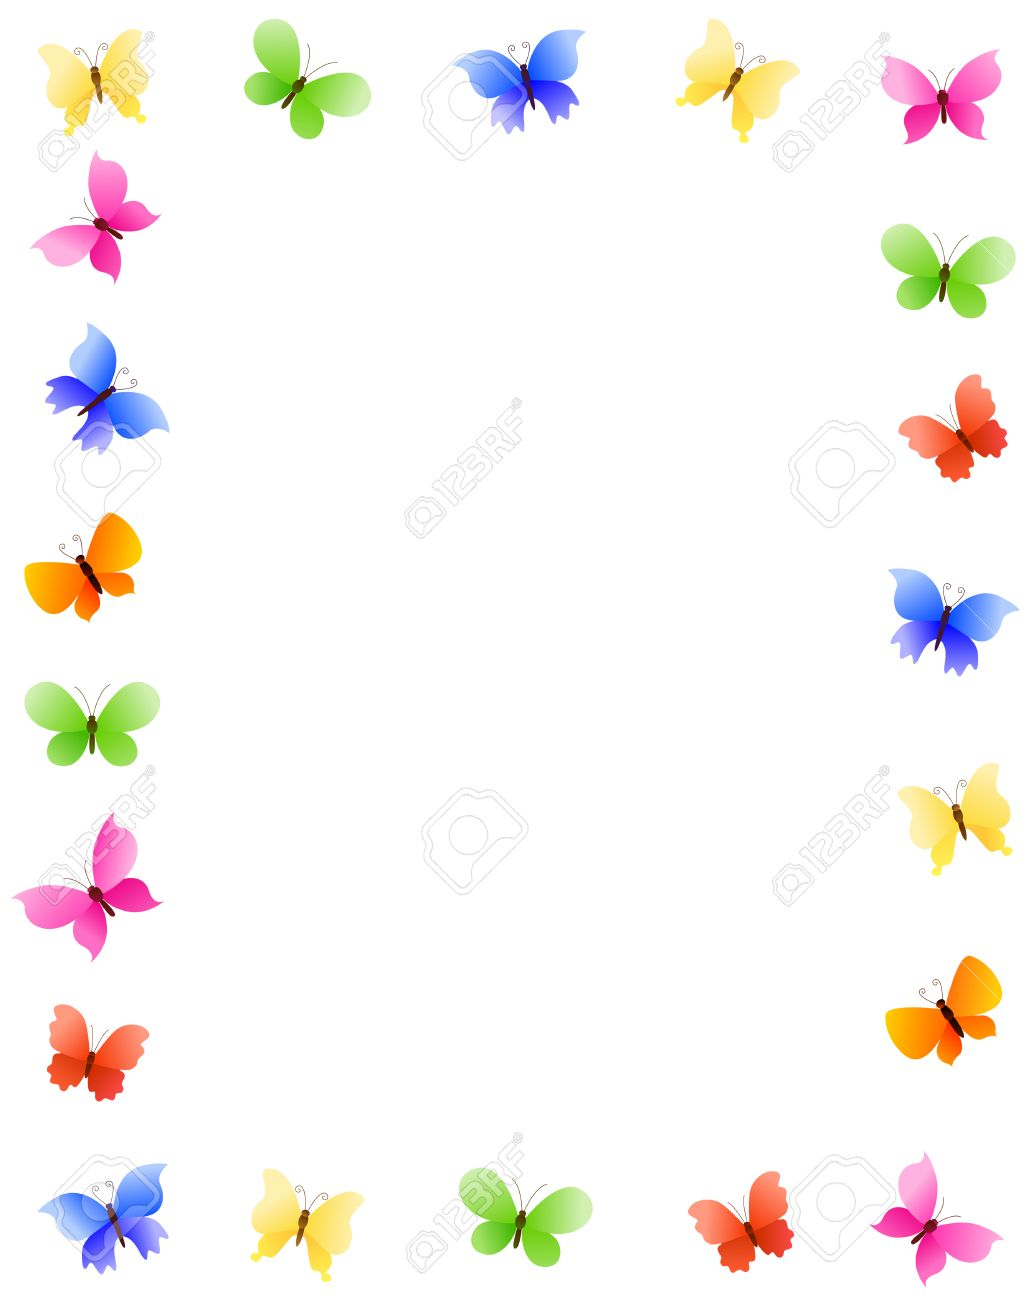 Colorful Butterfly Frame With Differend Shaped And Colored Butterfly ...